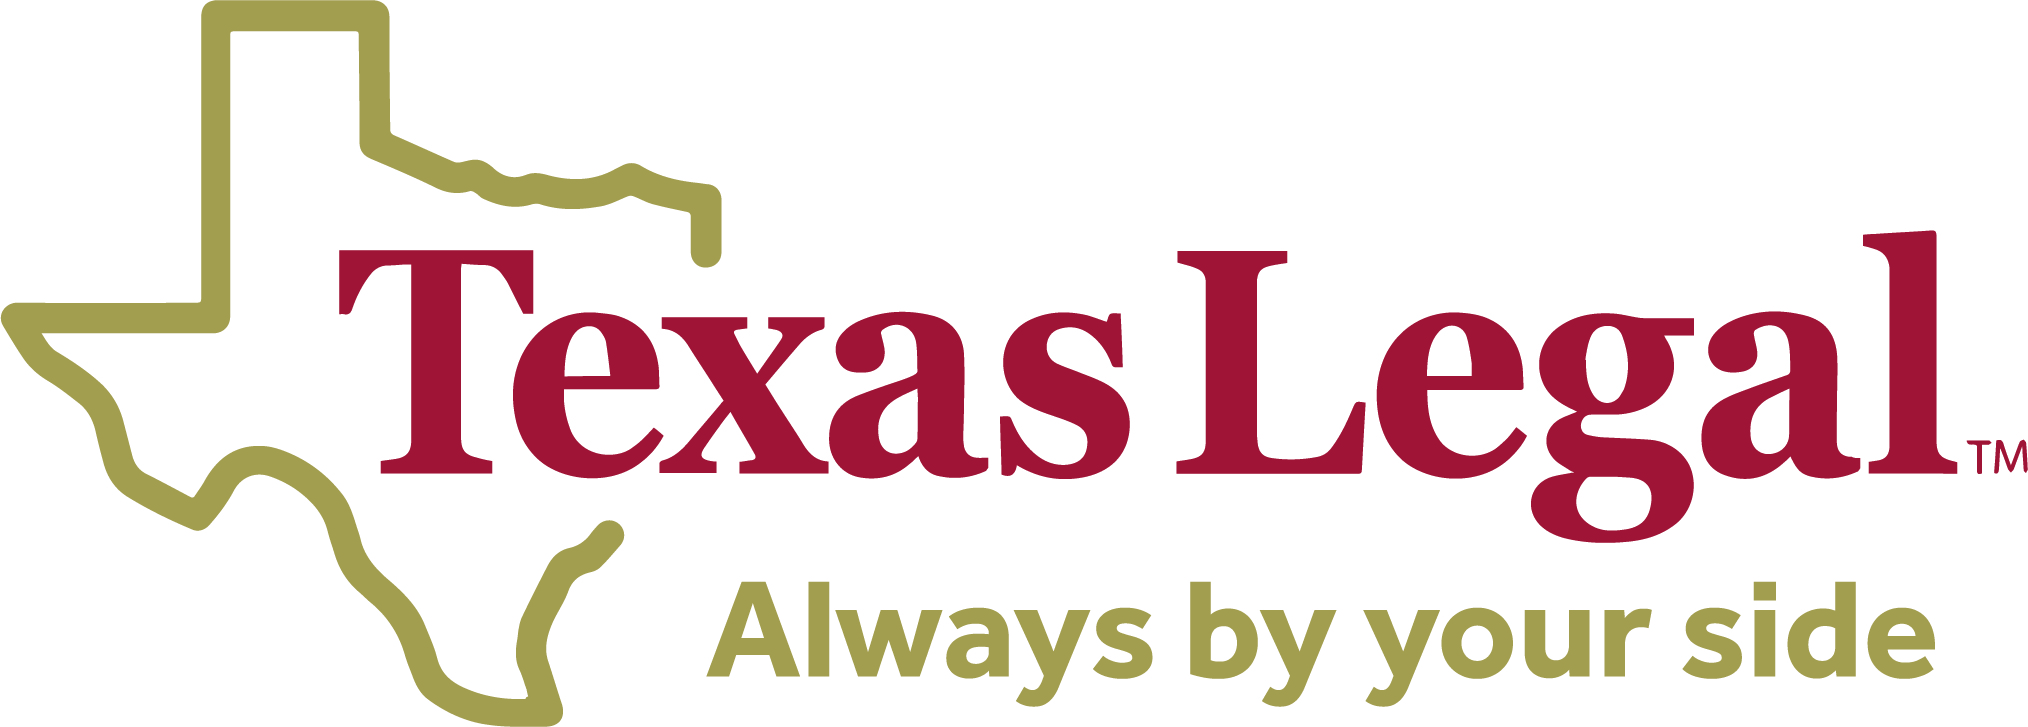 electronic Texas Legal Logo 2.jpg